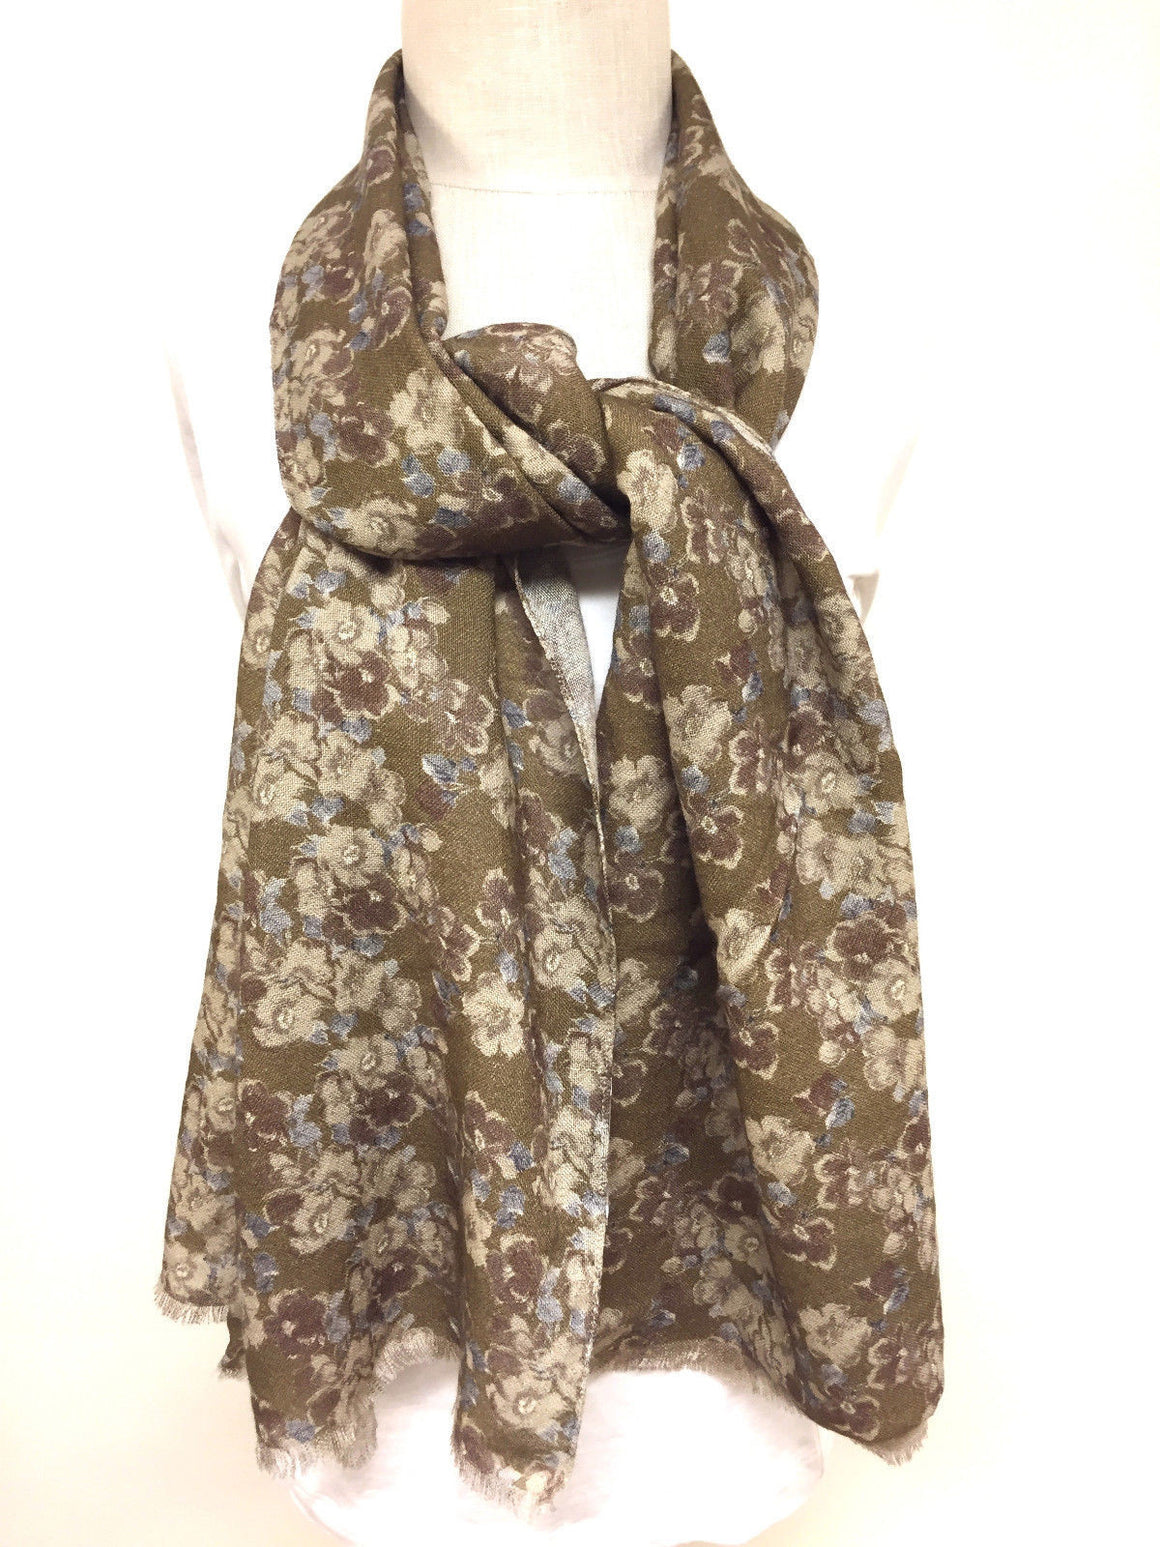 bisbiz.com ROBERT TALBOT NEW Brown/Multicolor Floral-Print Wool Shawl Scarf Wrap - Bis Luxury Resale